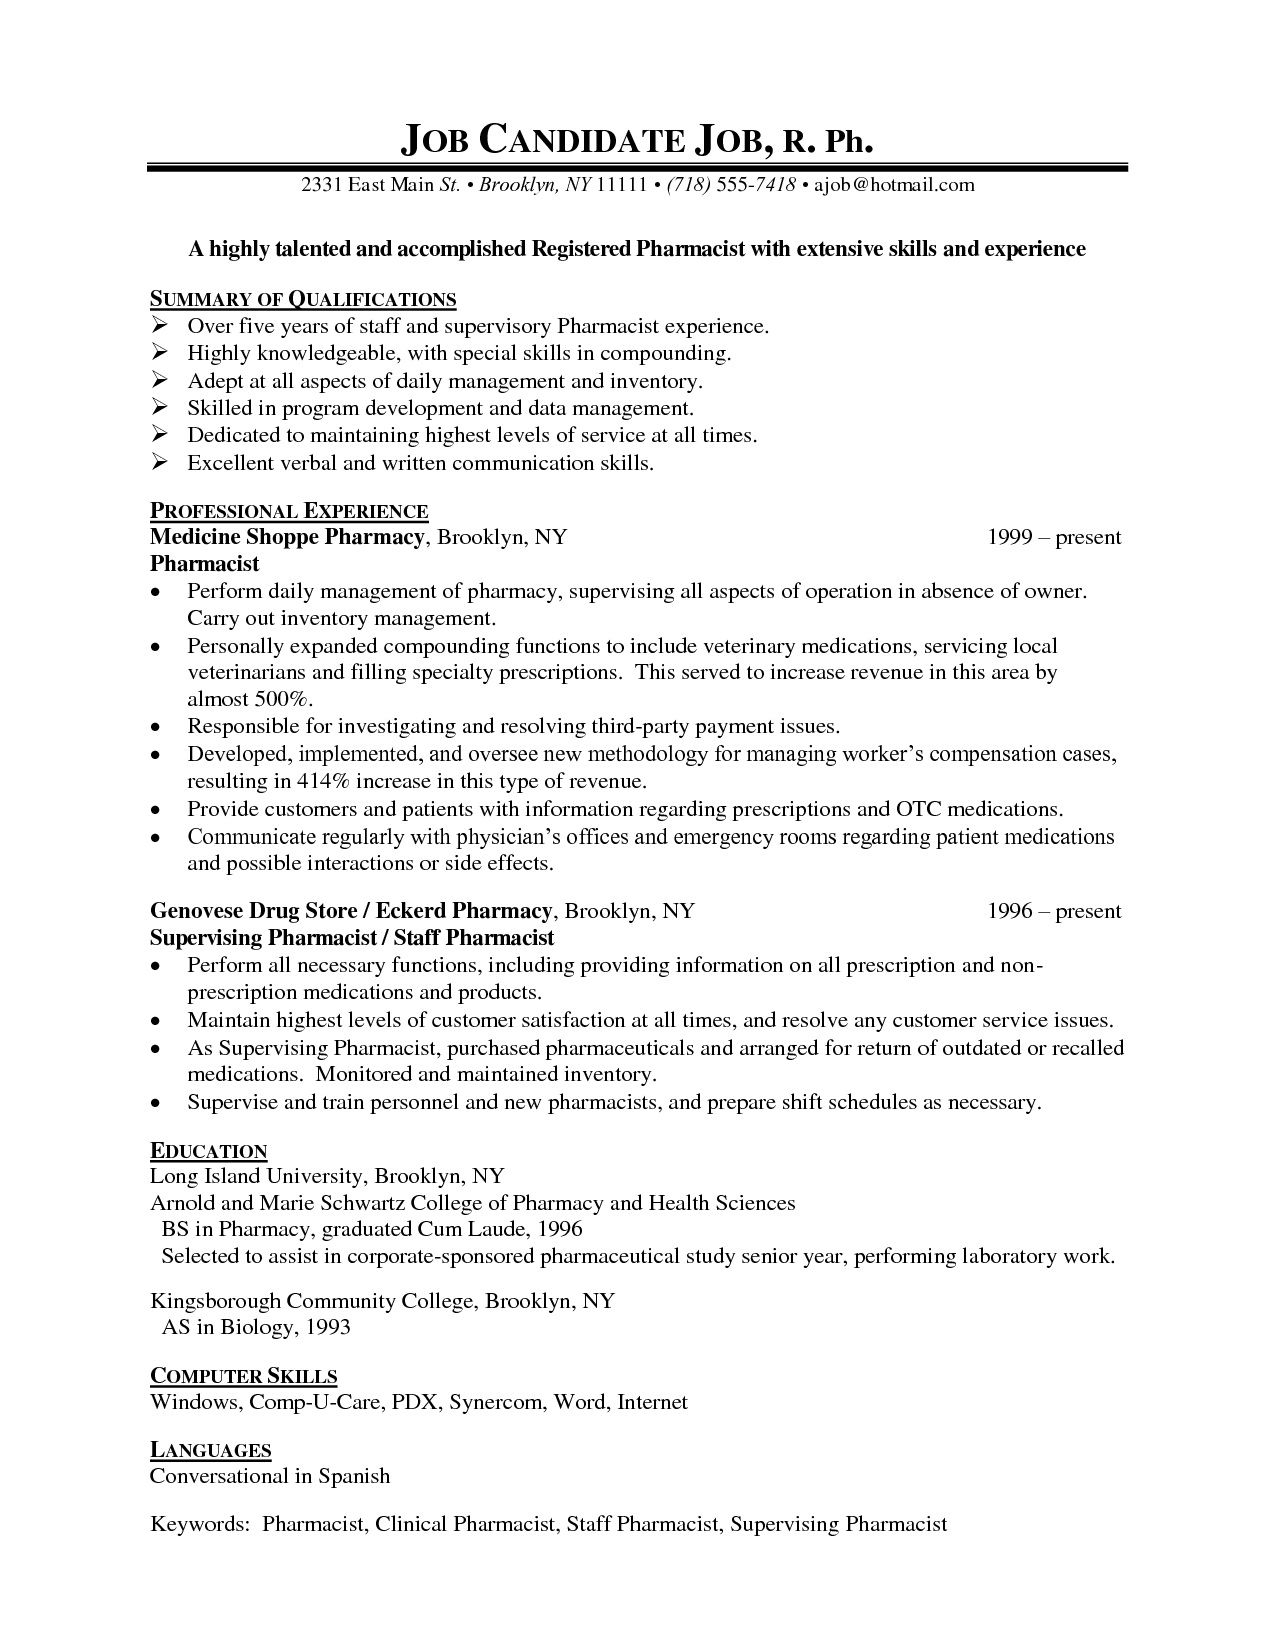 pharmacist resume examples we provide as reference to make correct and good quality resume